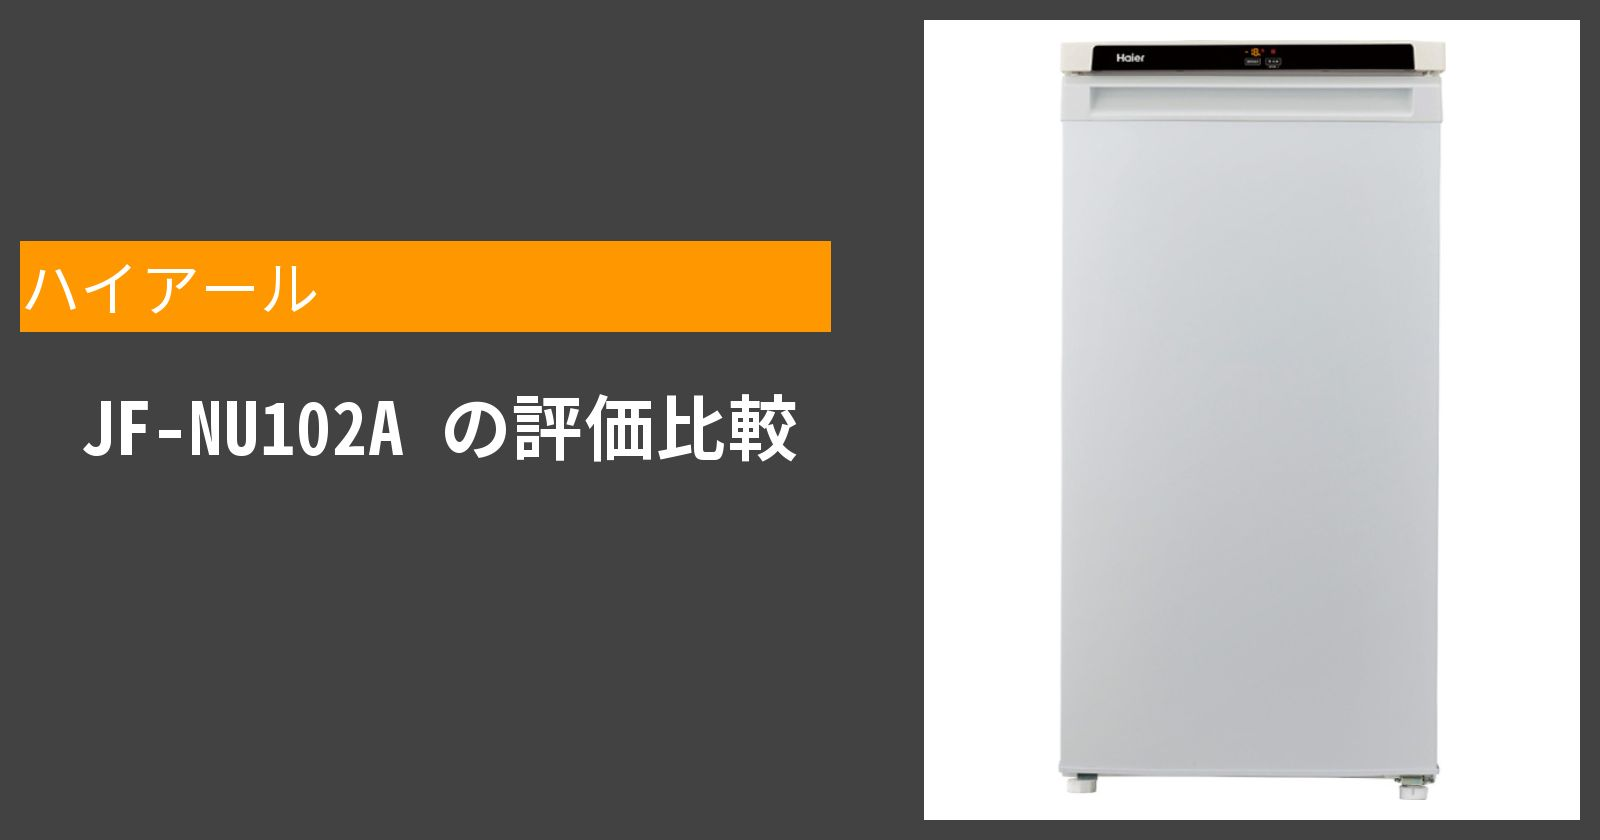 JF-NU102Aを徹底評価